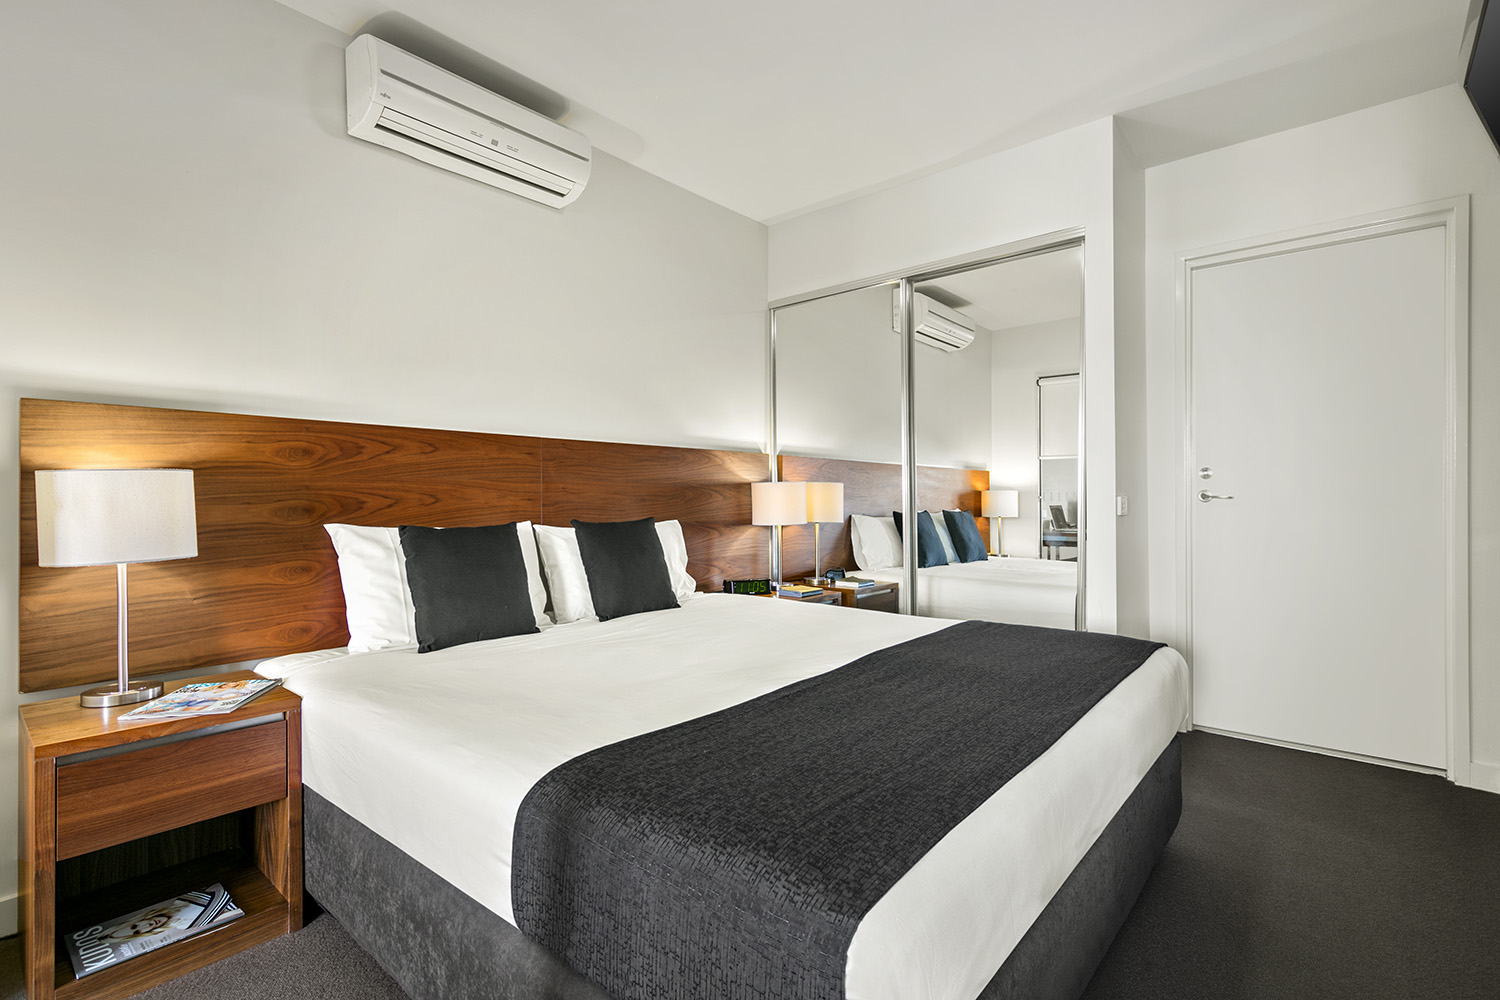 Dubbo Serviced Apartments